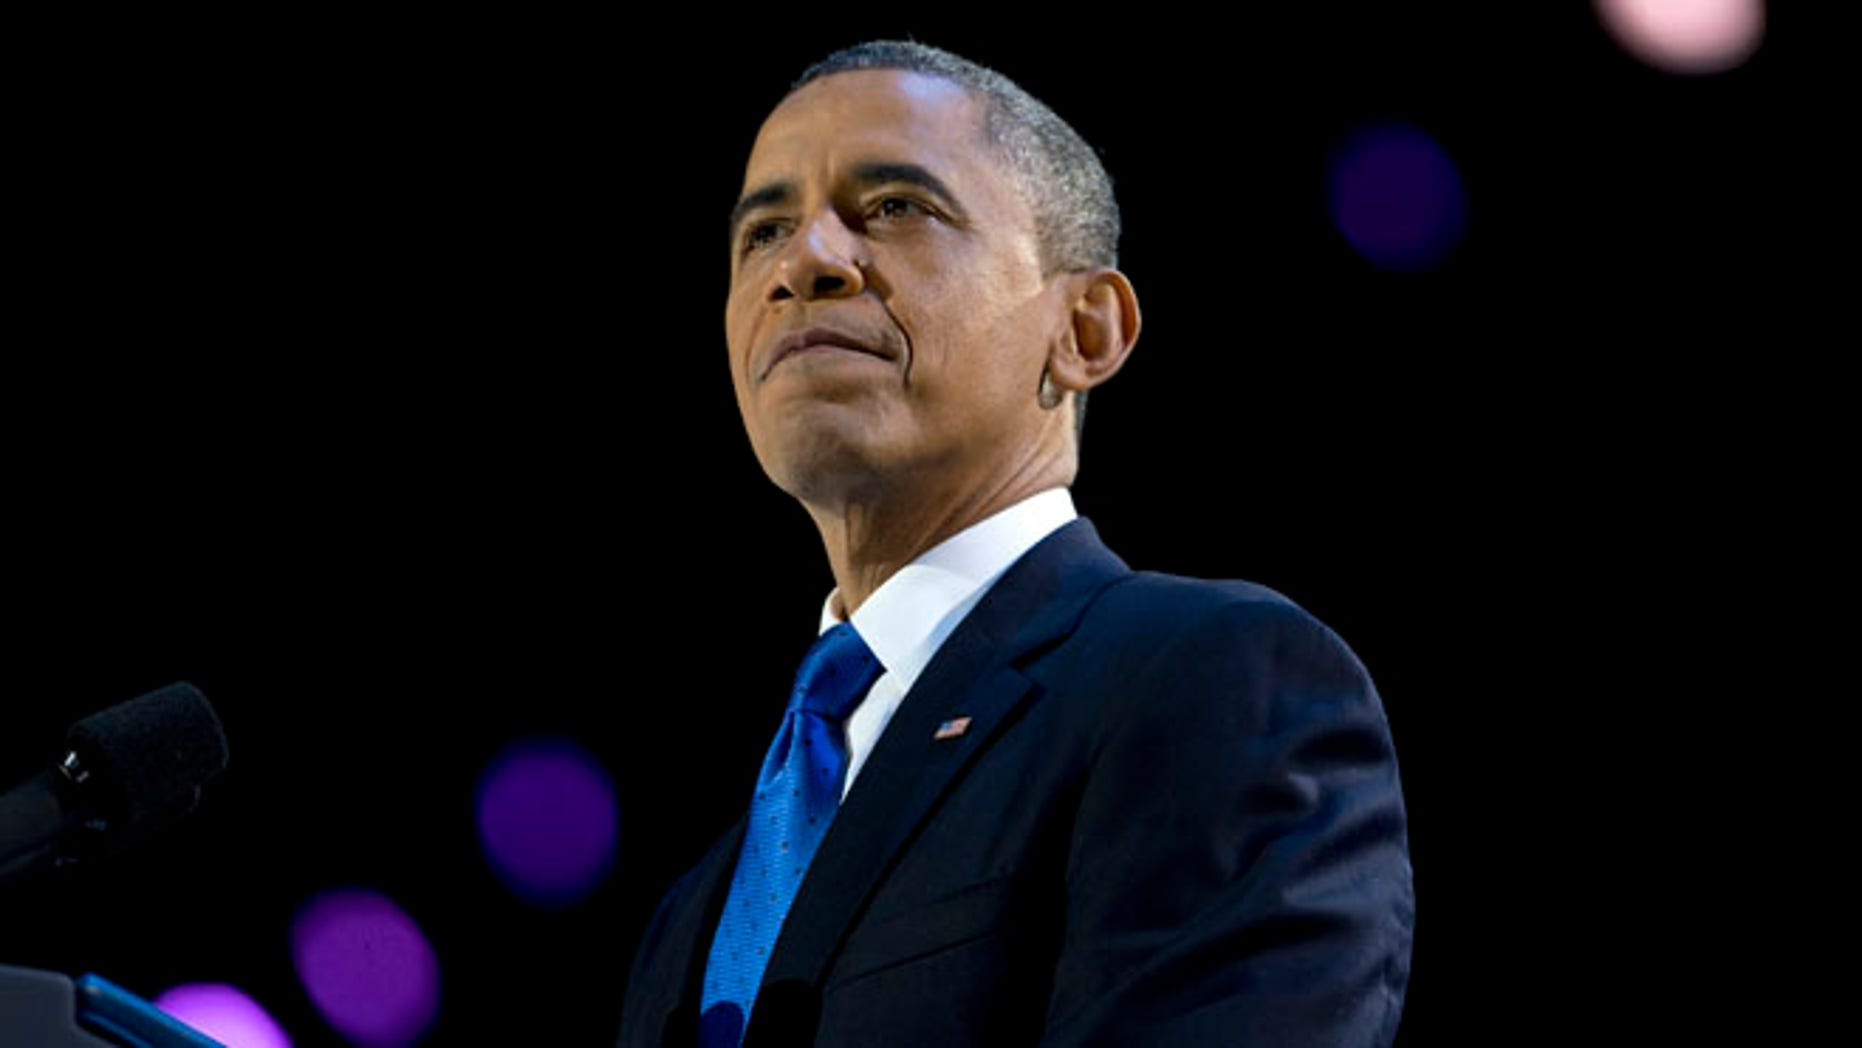 Nov. 7, 2012: President Obama pauses as he speaks at the election night party at McCormick Place in Chicago.